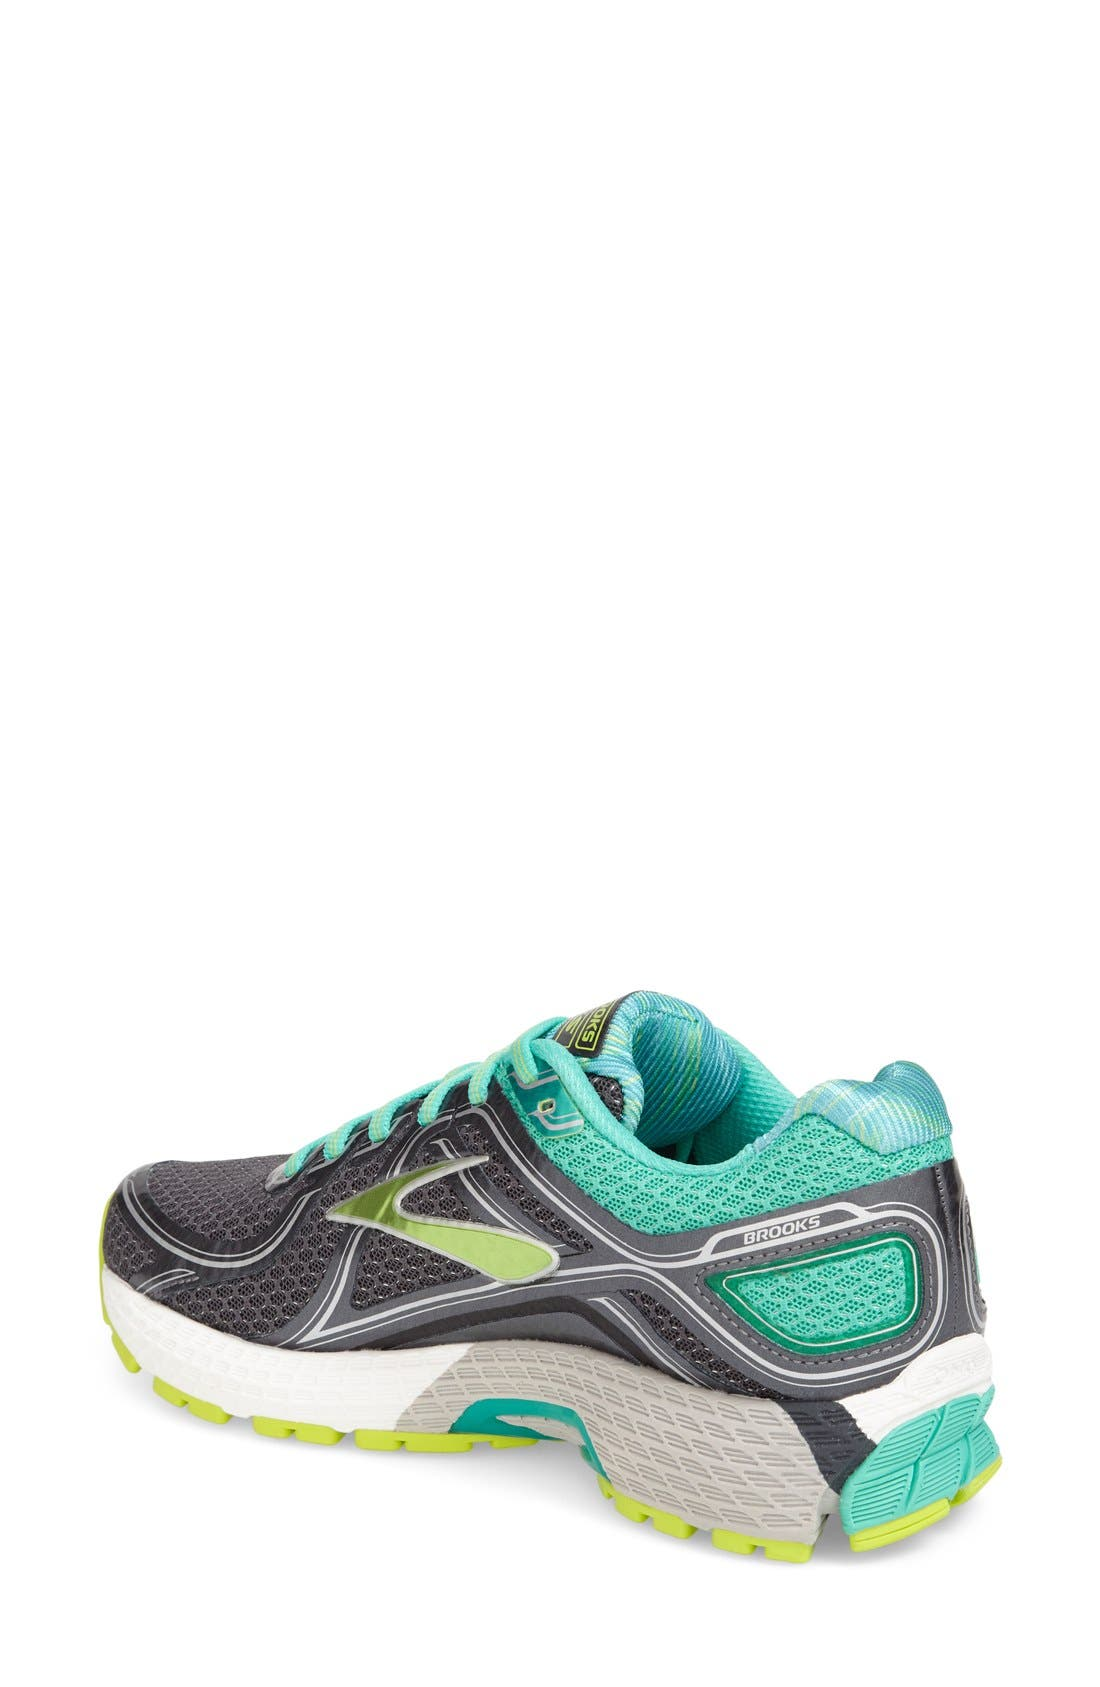 'Adrenaline GTS 16' Running Shoe,                             Alternate thumbnail 2, color,                             020